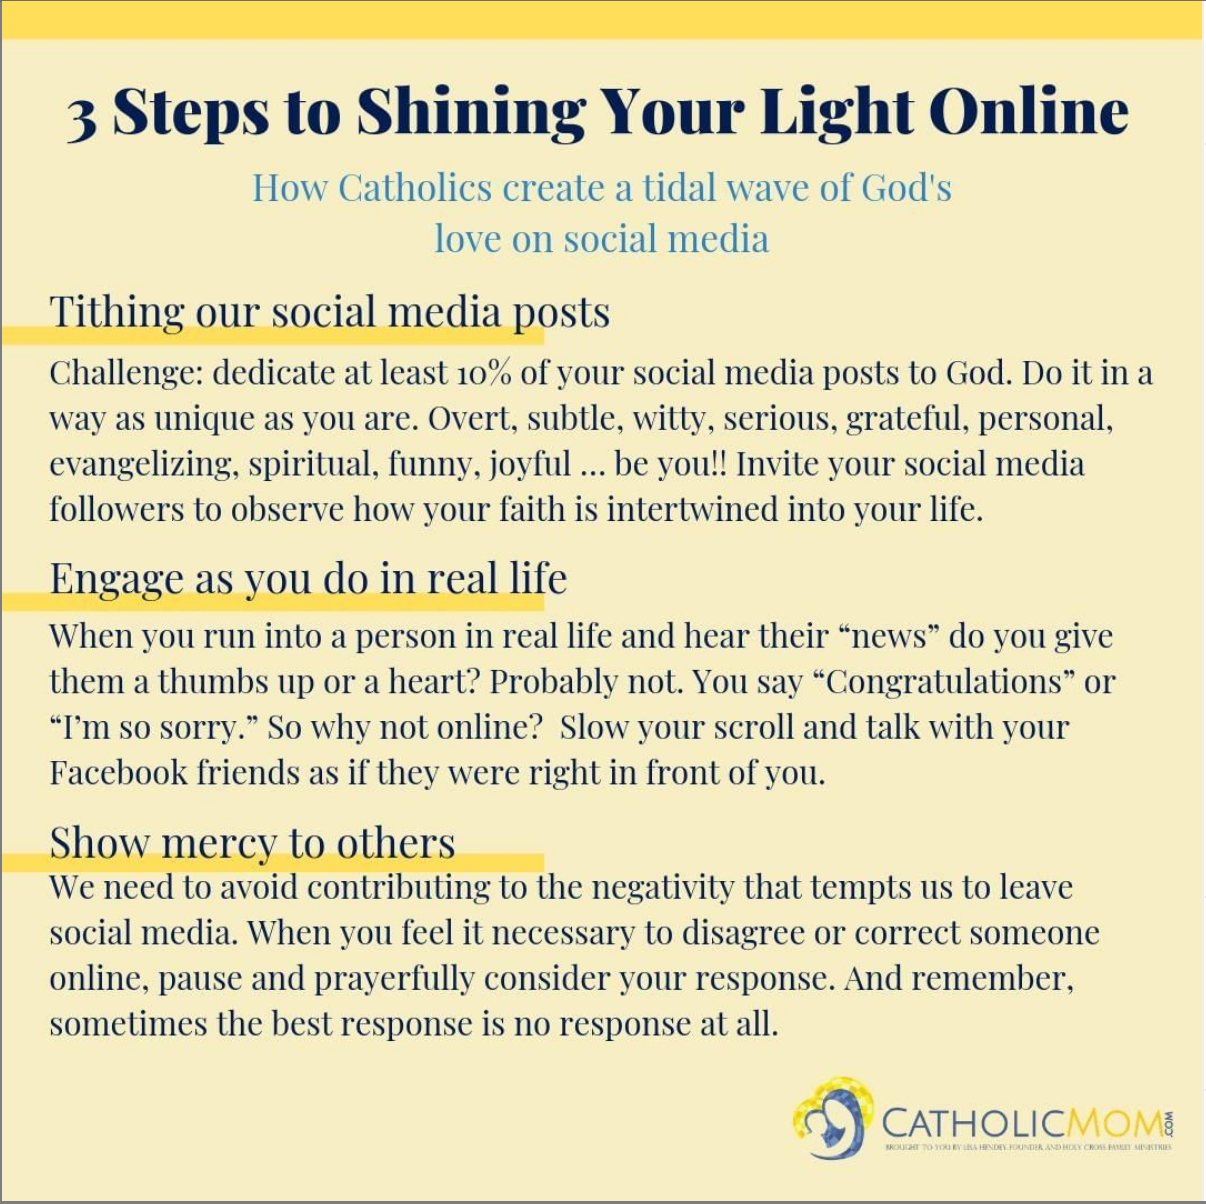 2020 0629 LJones-3 steps to shine light online-CatholicMom